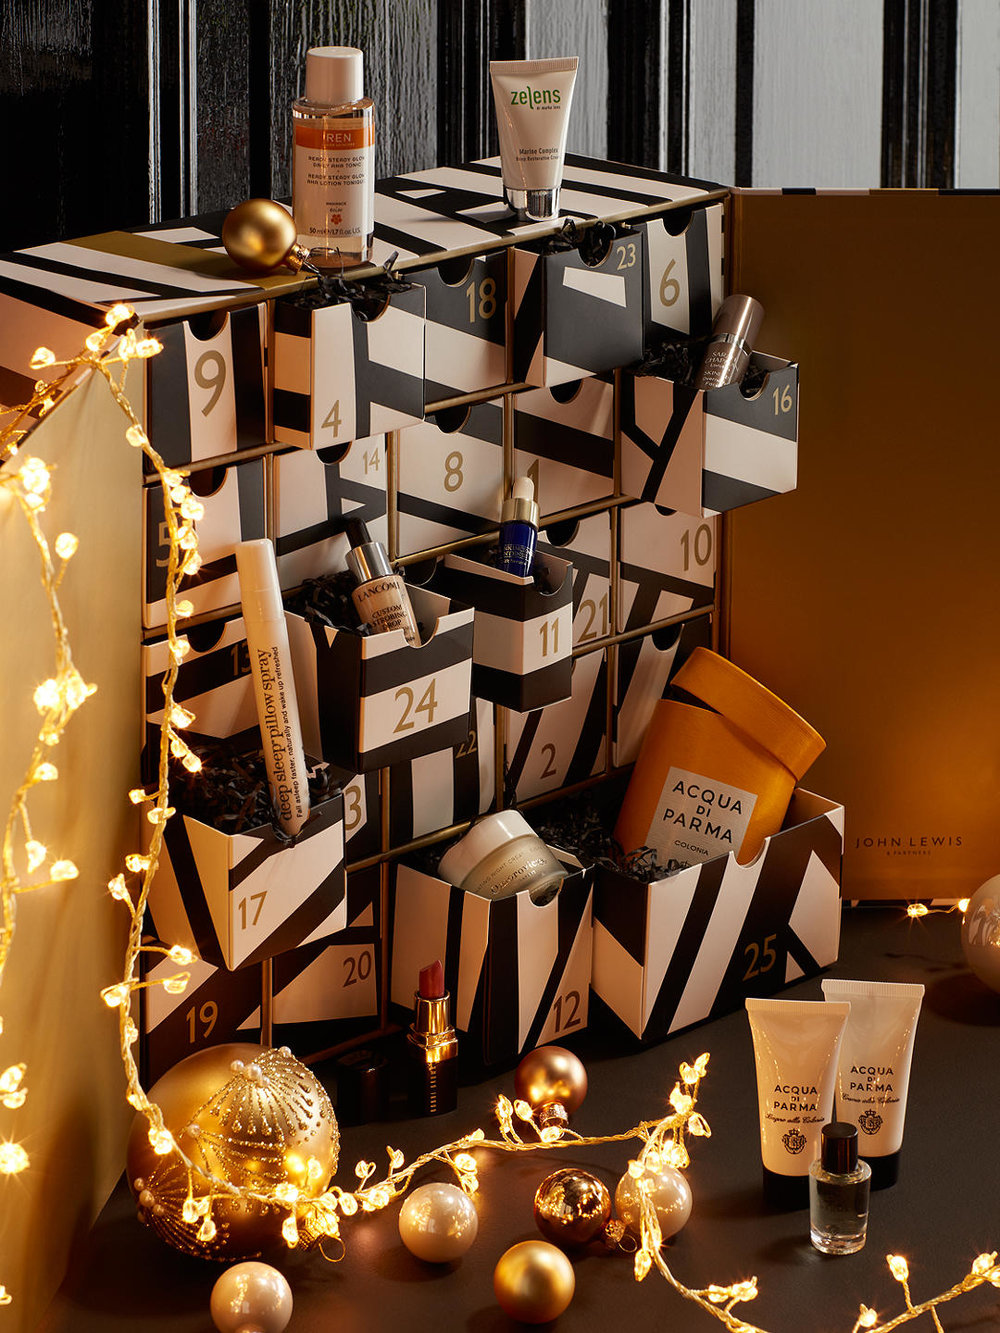 John Lewis & Partners Beauty Advent Calendar - The ultimate indulgence, John Lewis & Partners 2018 beauty advent calendar includes luxury brands from Charlotte Tilbury to Acqua Di Palma and even four mini bottles of perfume!£165.00